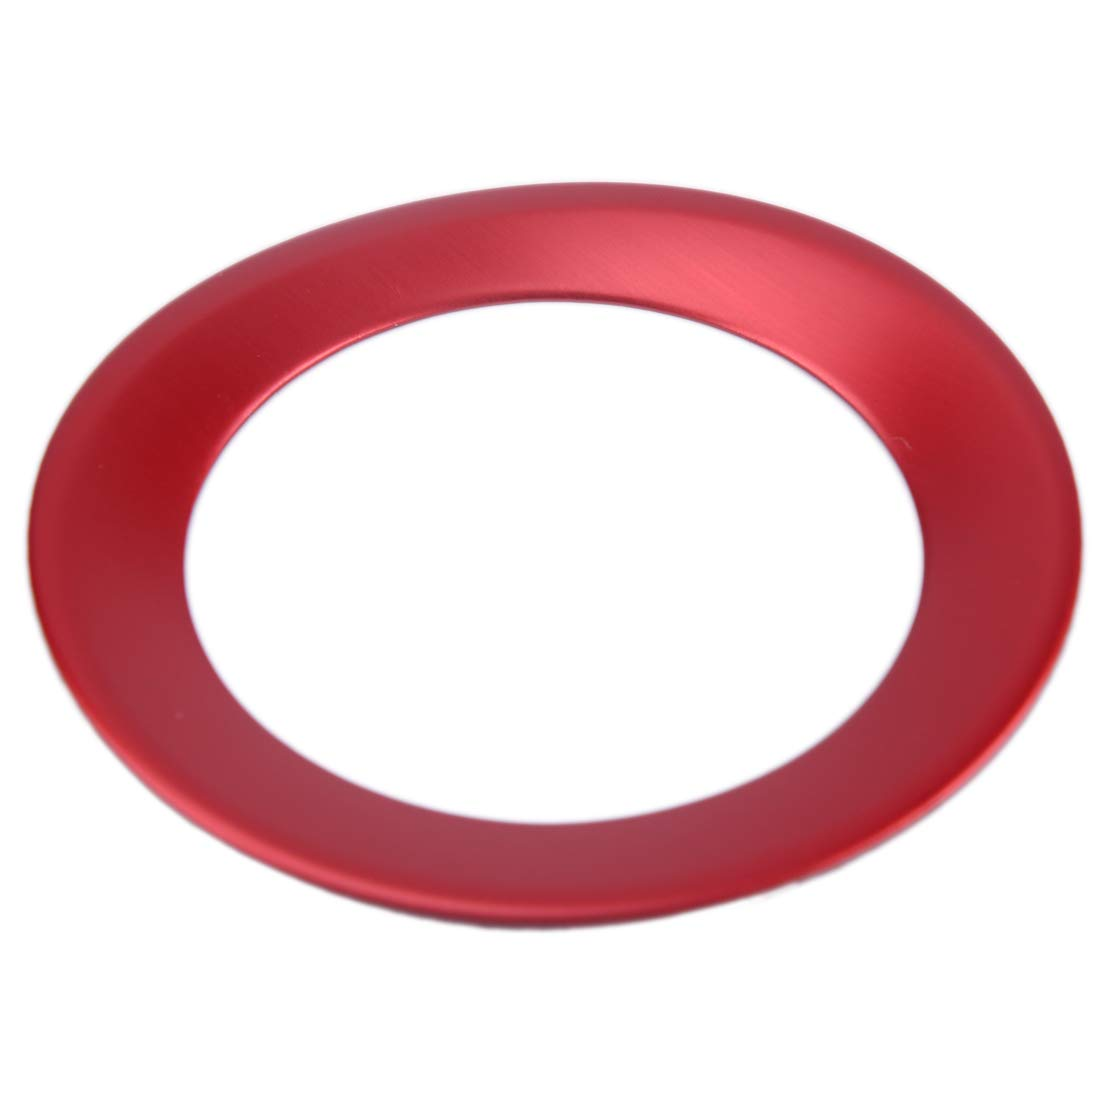 Red Steering Wheel Center Cover Trim Fit Jeep Cherokee 2014-2019